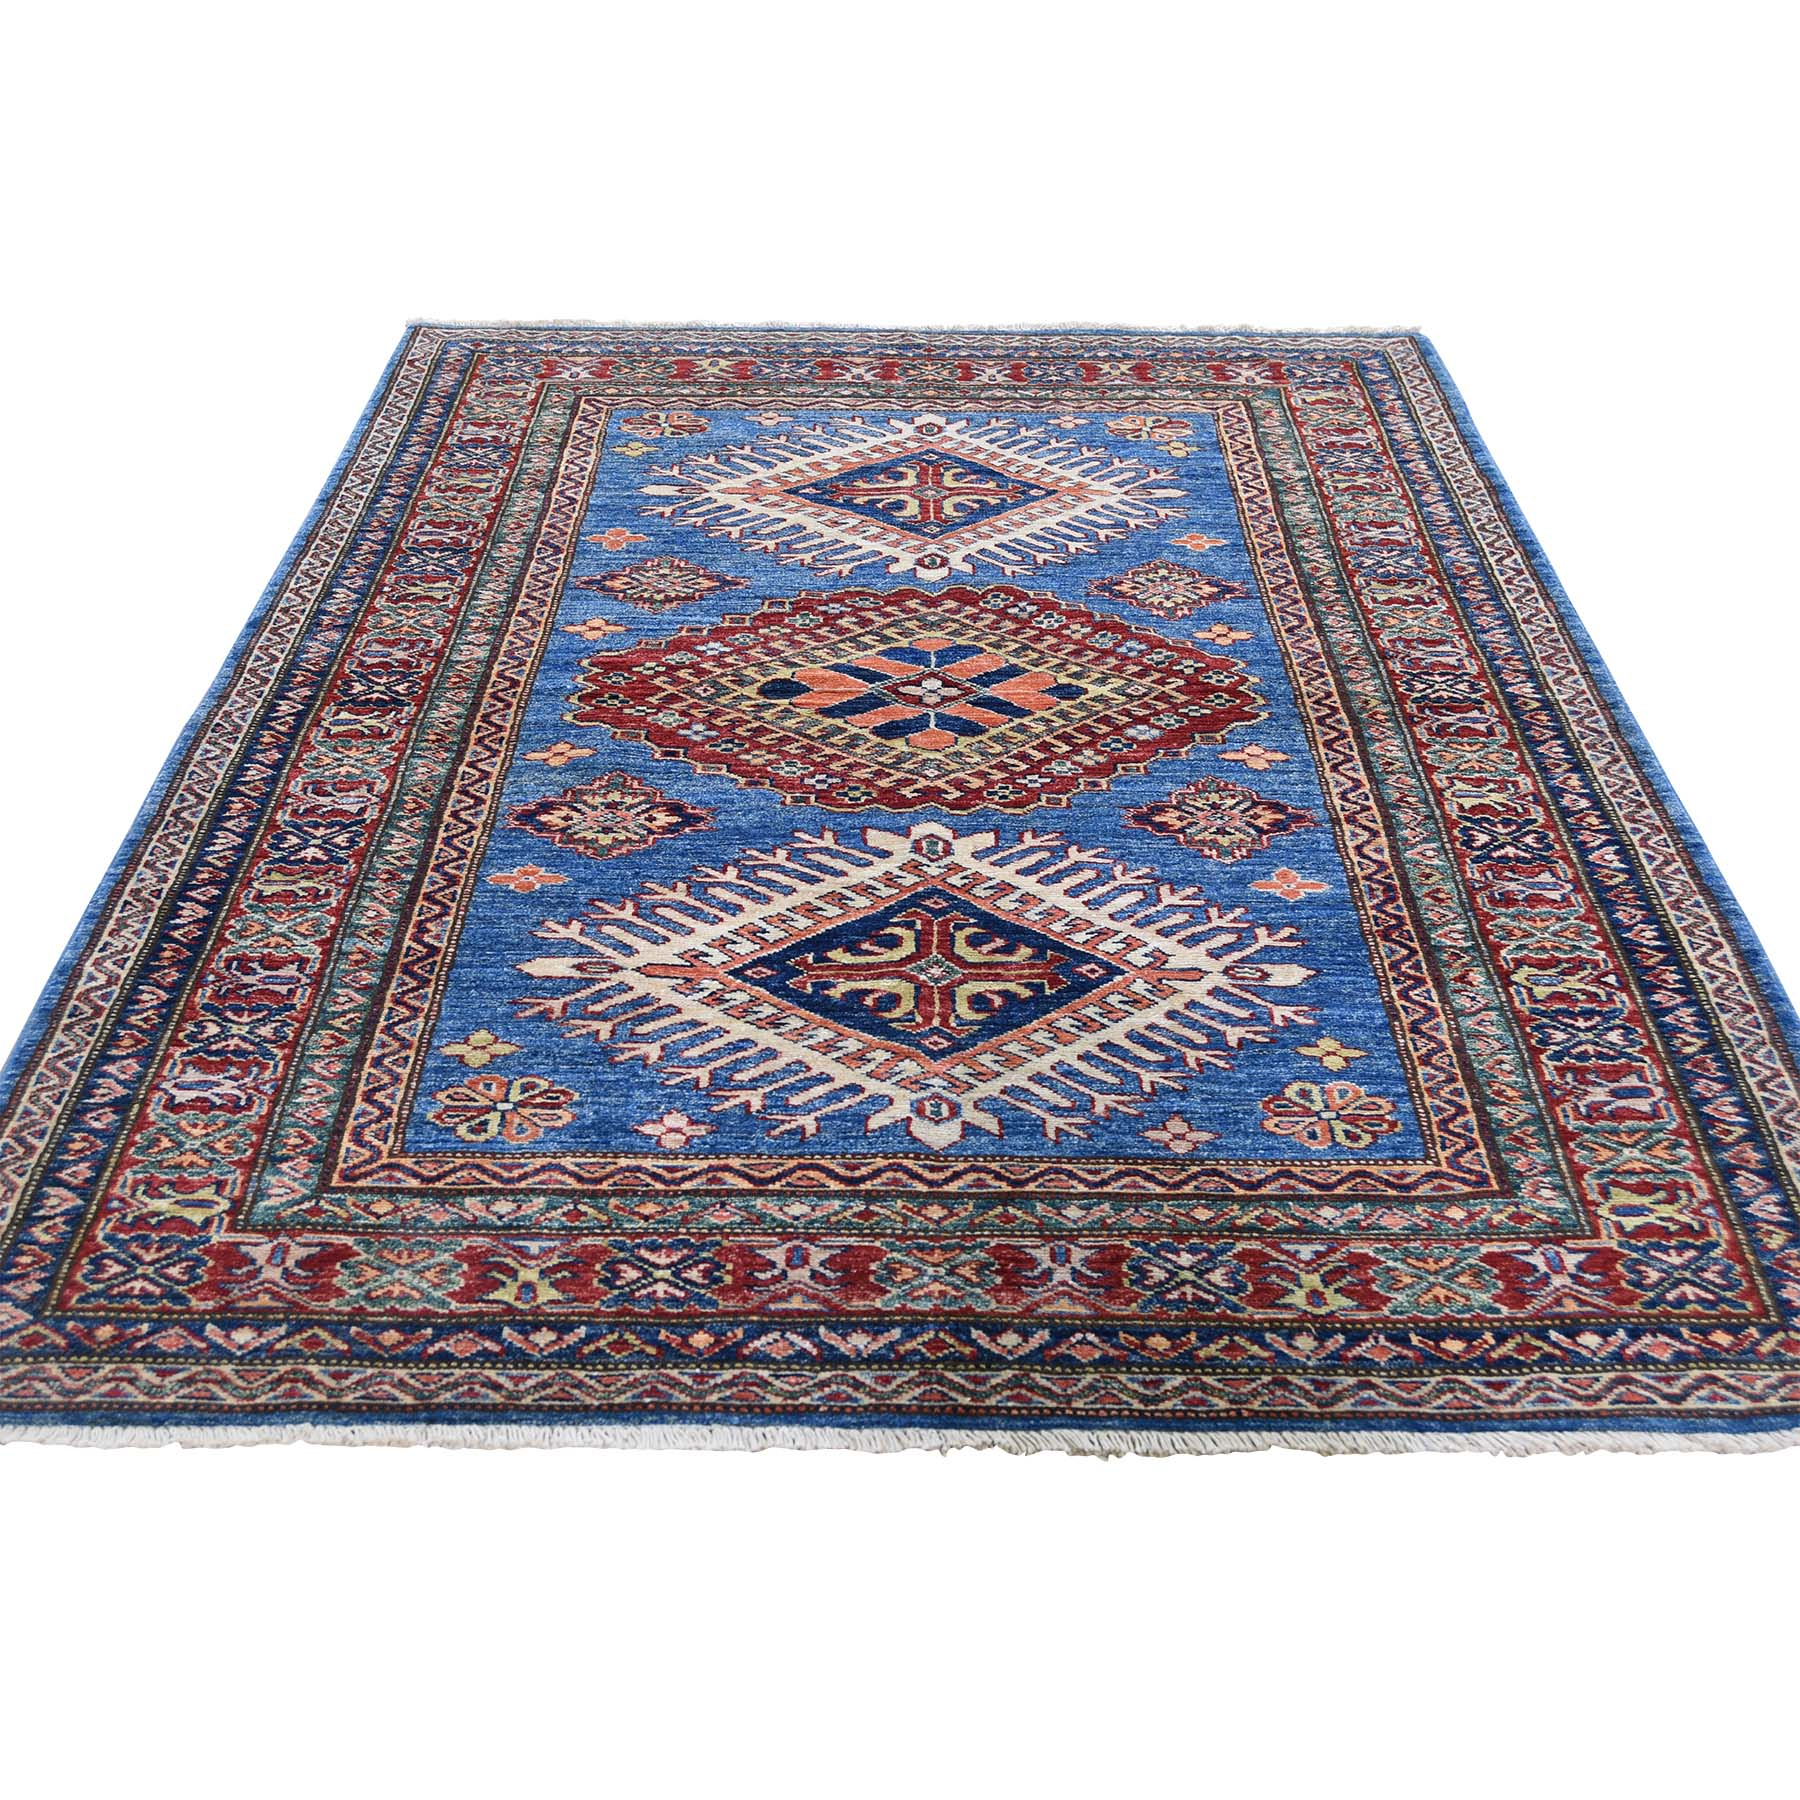 4 3 X6 2 Super Kazak Pure Wool Blue Geometric Design Hand Knotted Oriental Rug